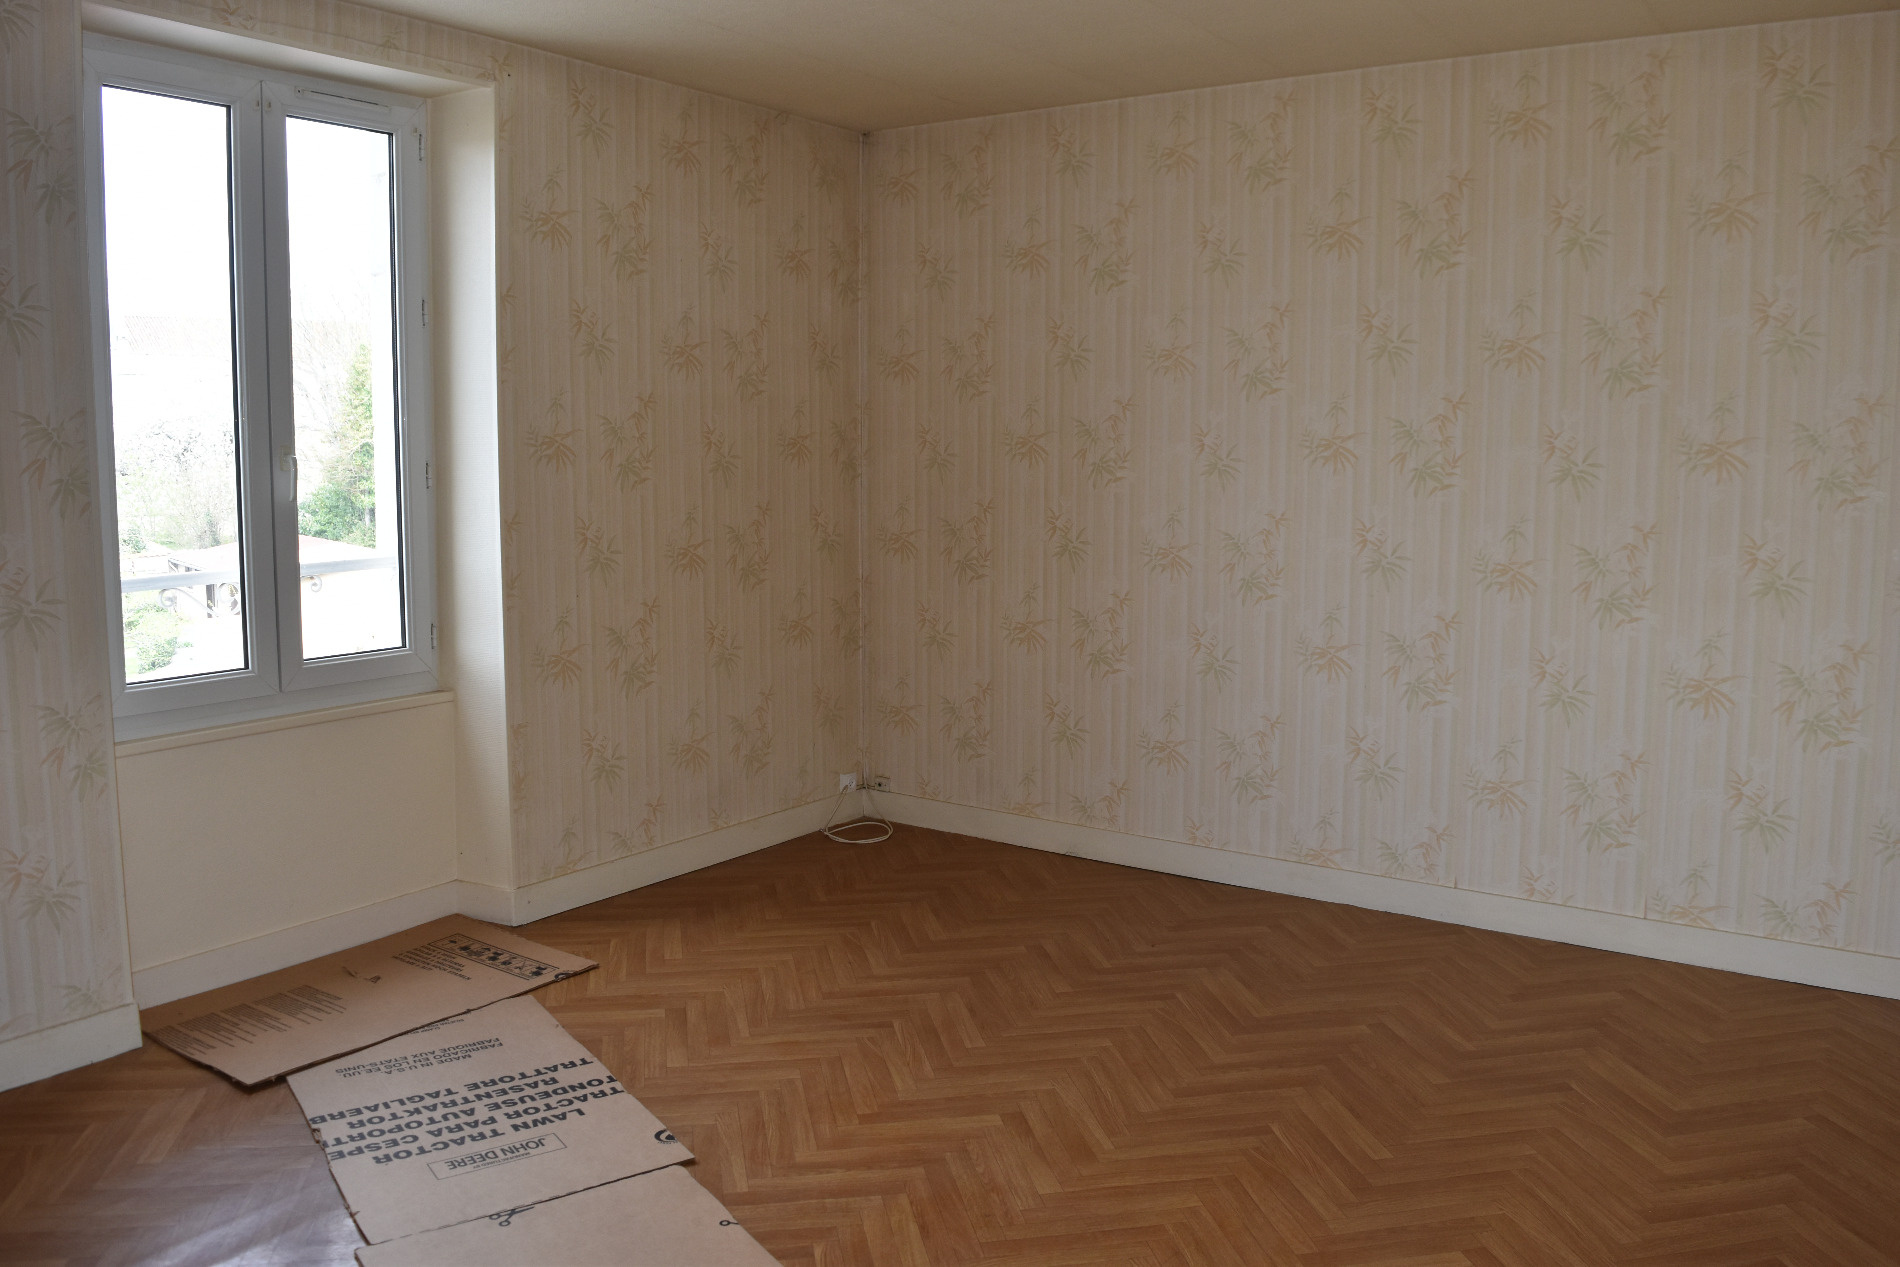 Achat maison t10 montbron anb immobilier for Achat maison yvrac